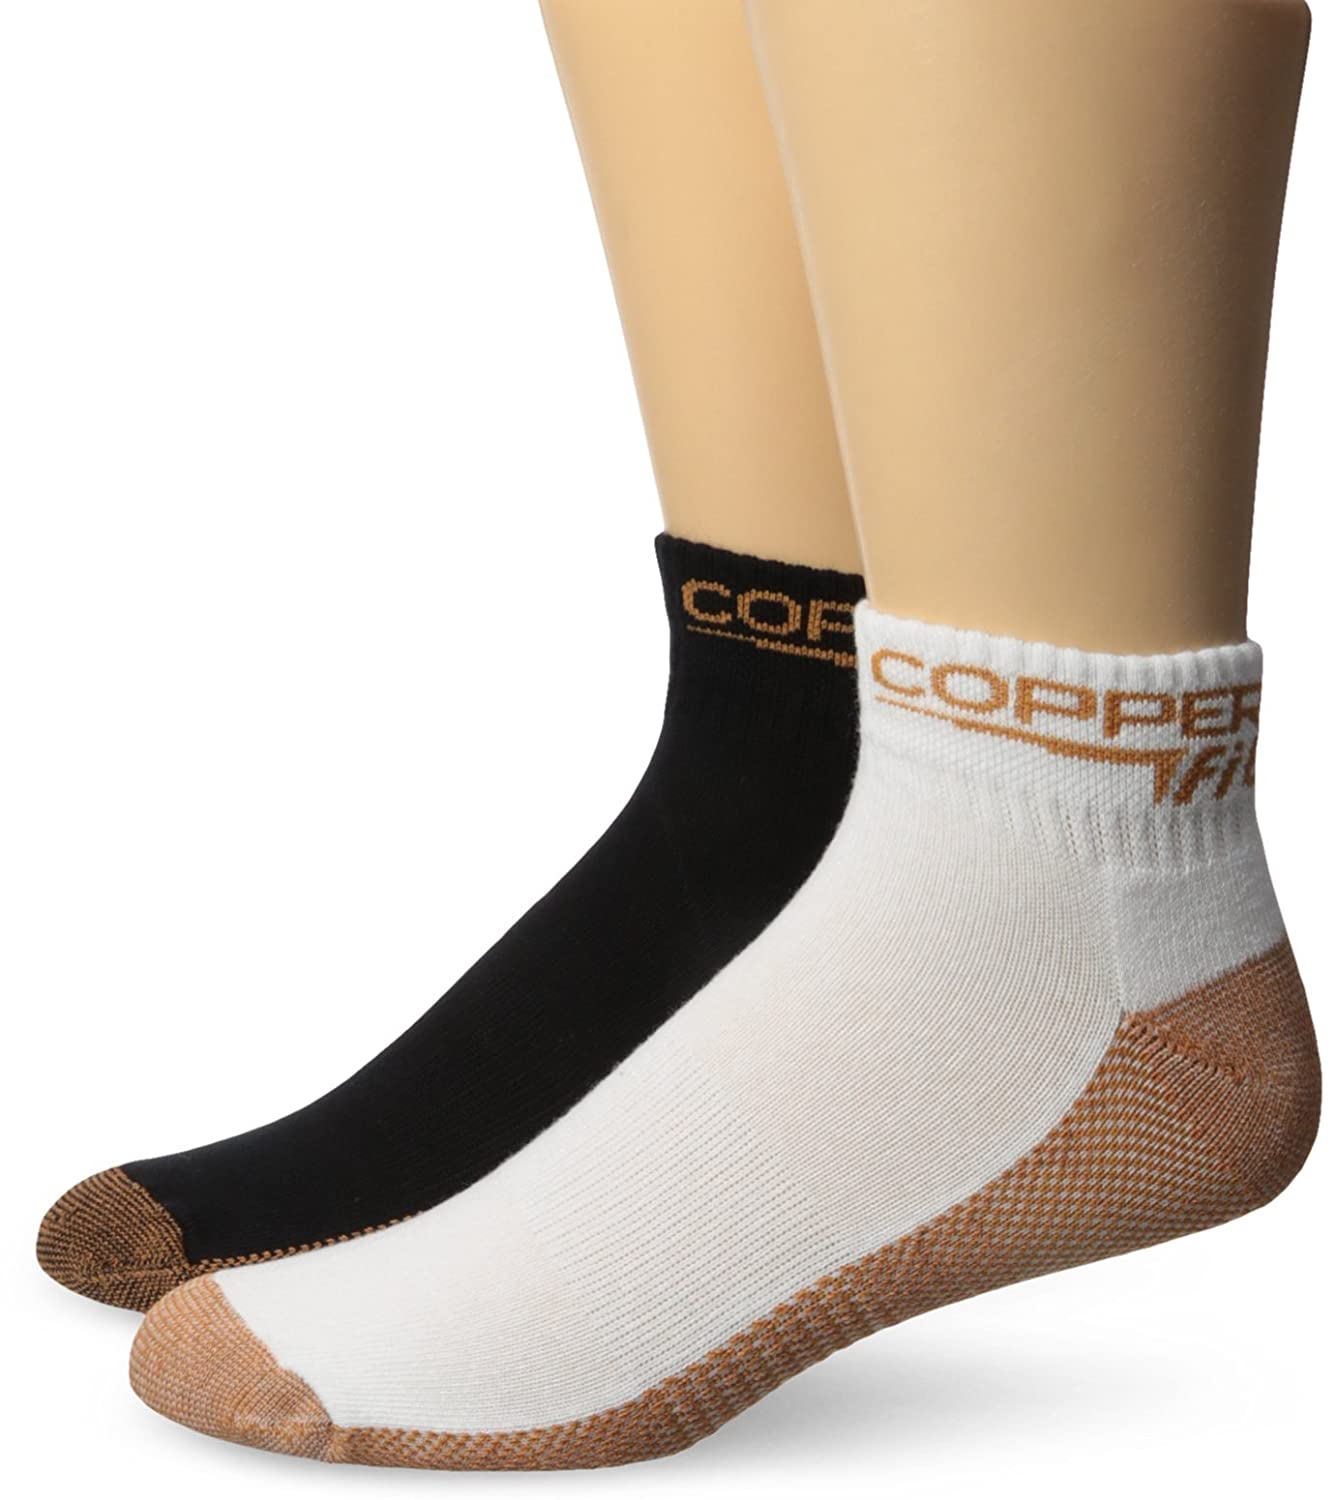 Amazon Com Copper Fit Ankle Sports Socks Large Black White 2 Pair Sports Outdoors